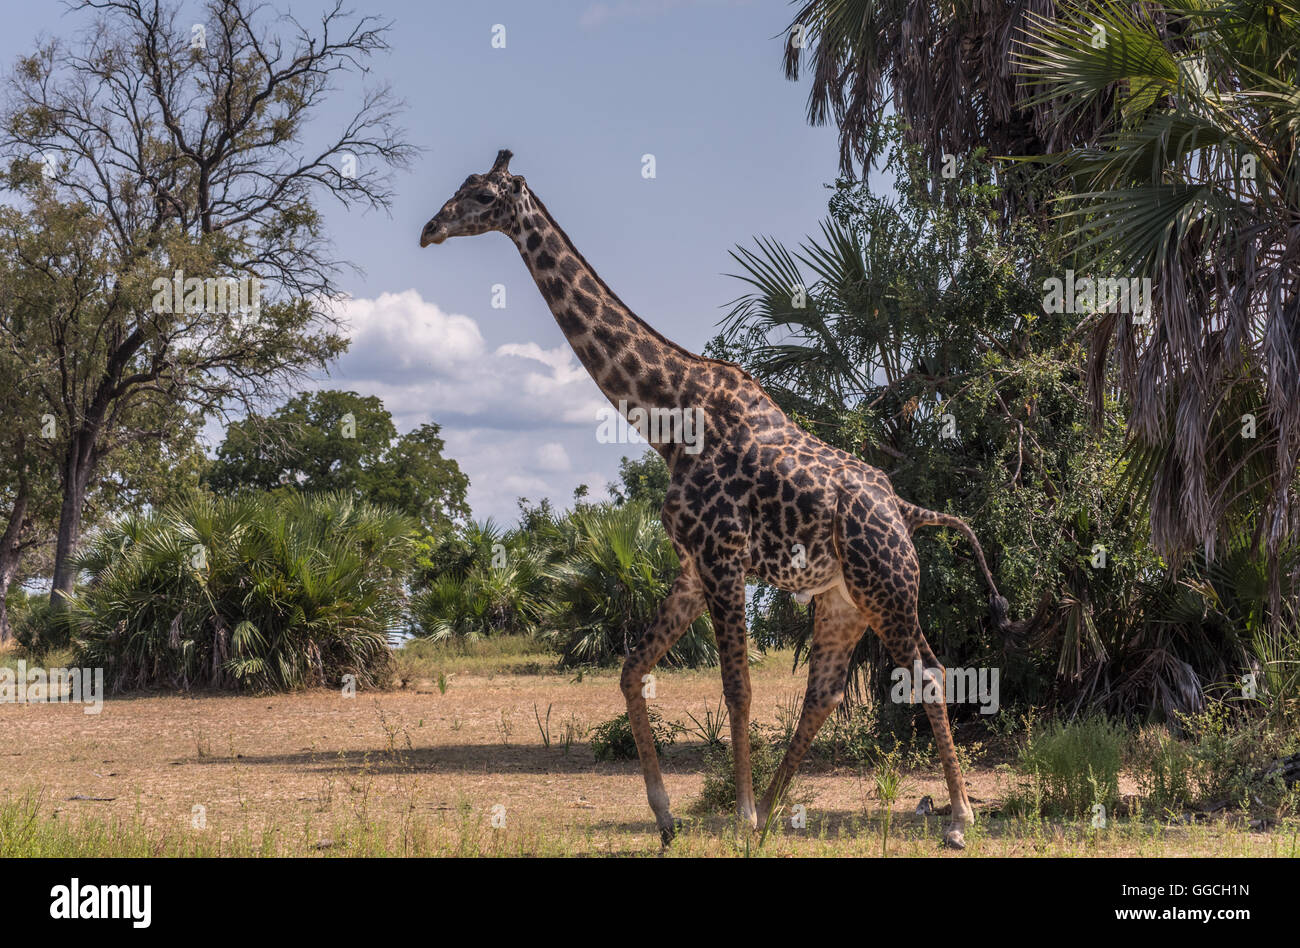 Masai Giraffe in the Selous Game Reserve Tanzania Stock Photo